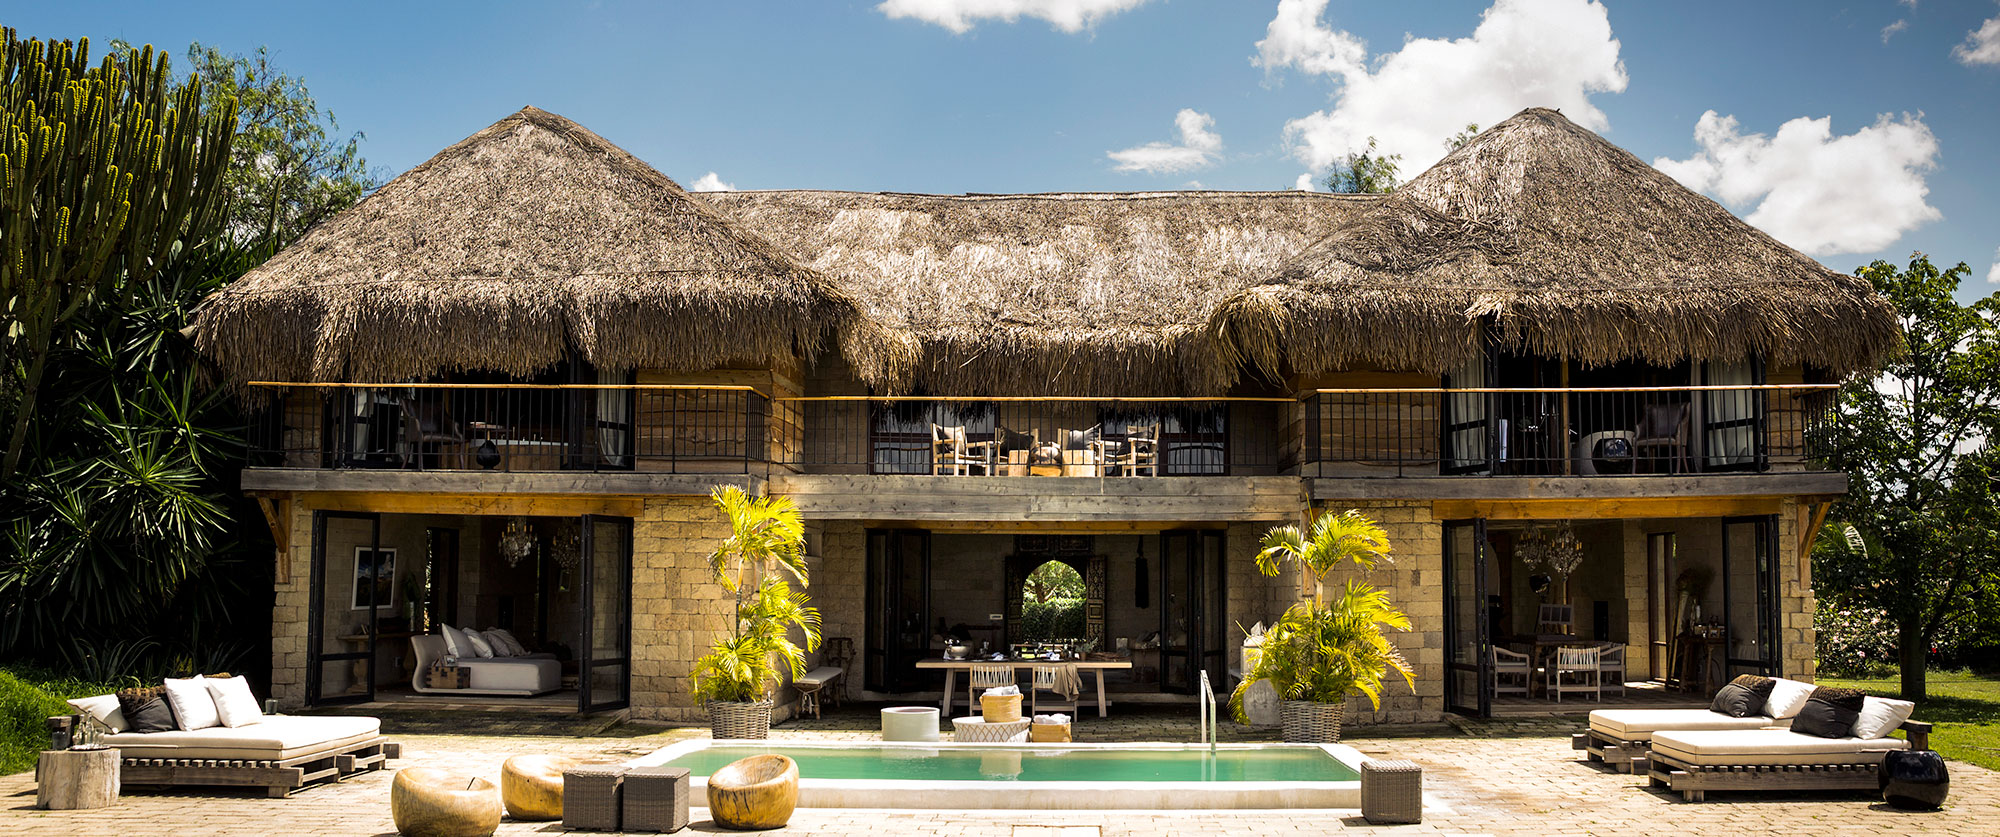 Classic Kenya Luxury Safari Package - Segera Retreat Africa